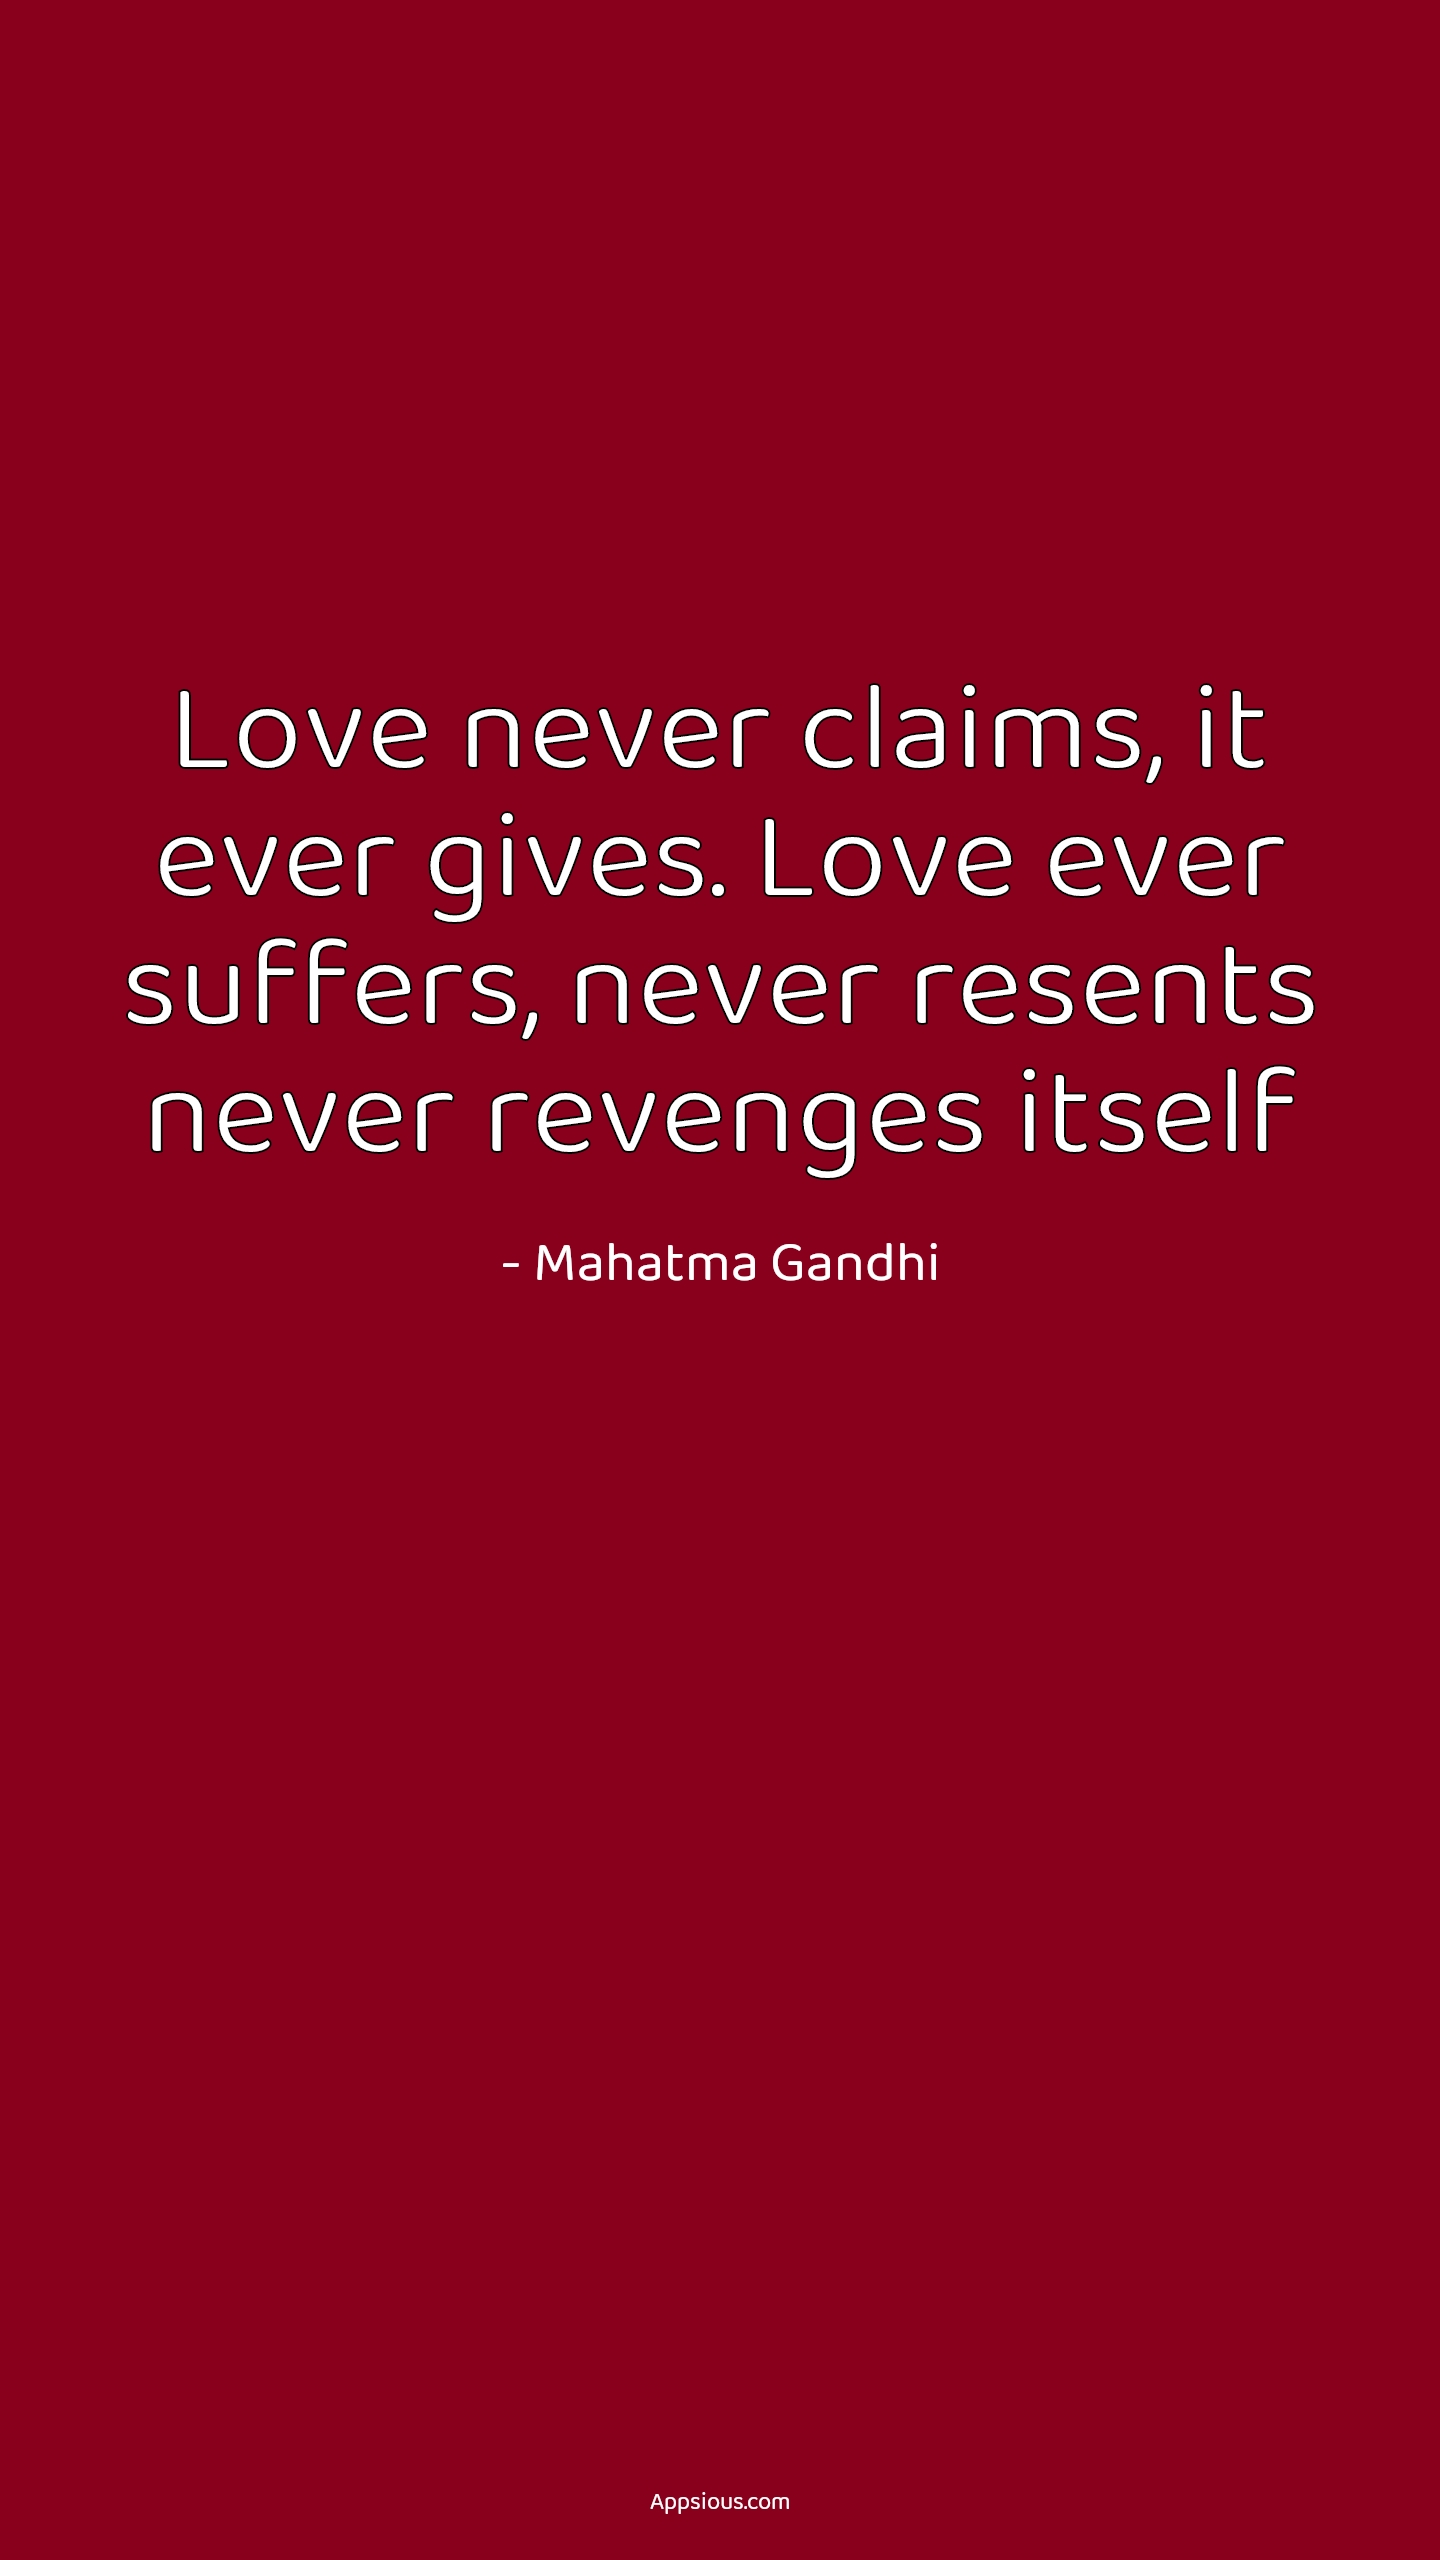 Love never claims, it ever gives. Love ever suffers, never resents never revenges itself